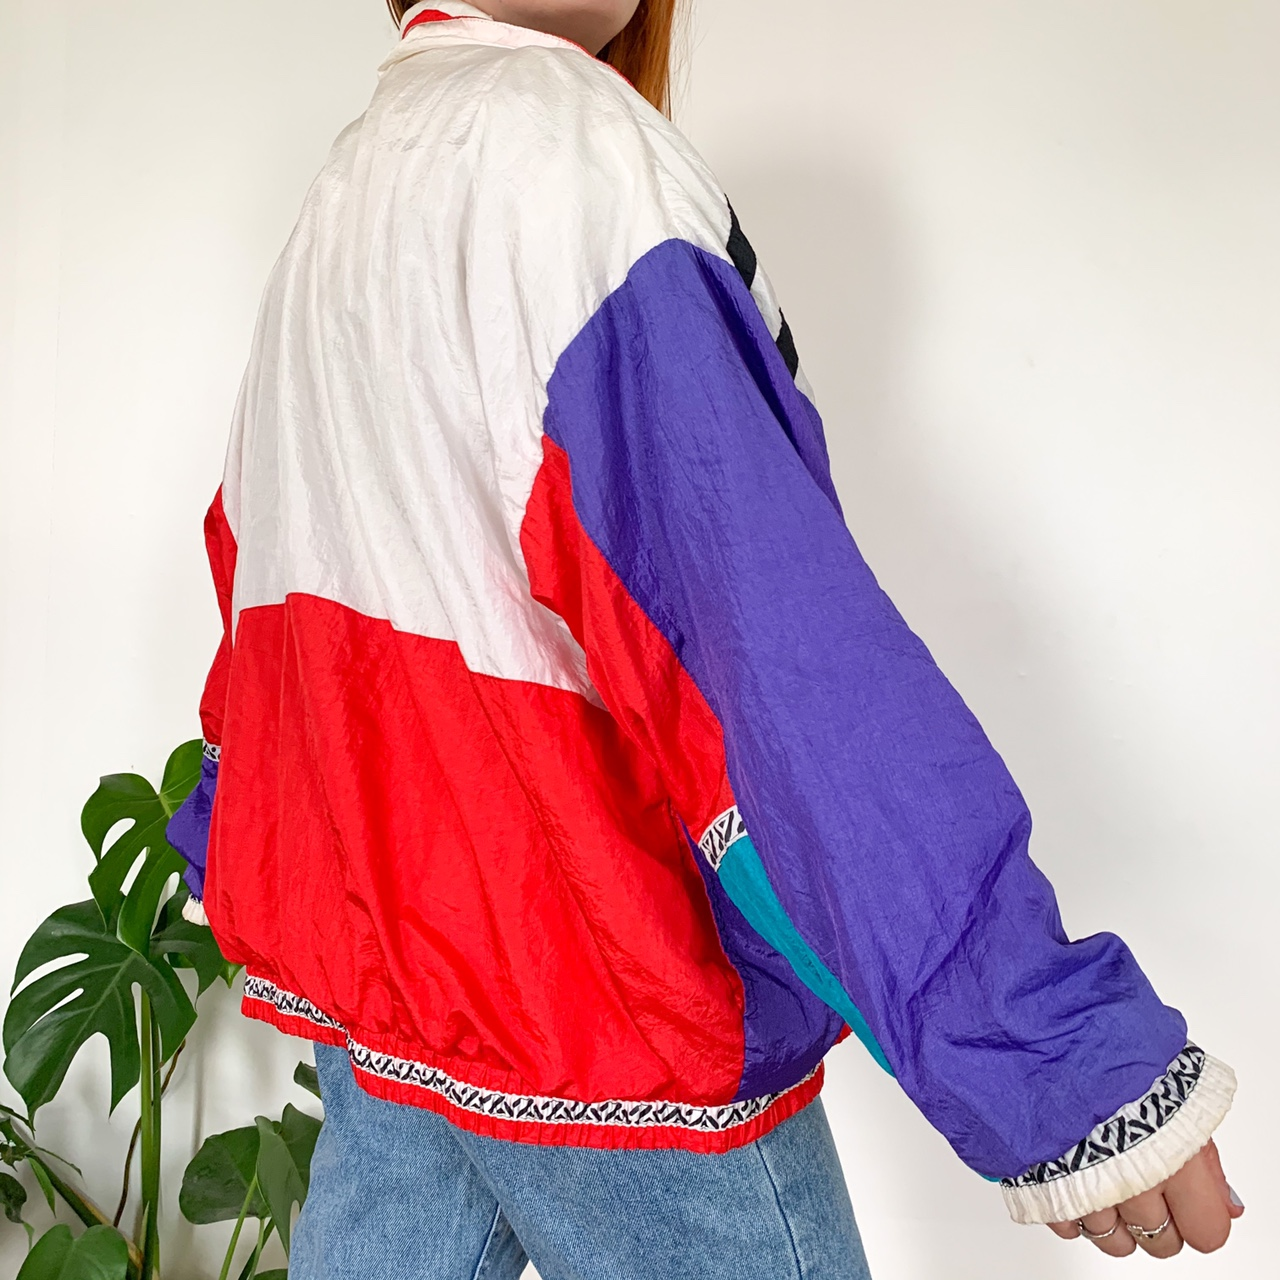 Cool colorful abstract windbreaker jacket